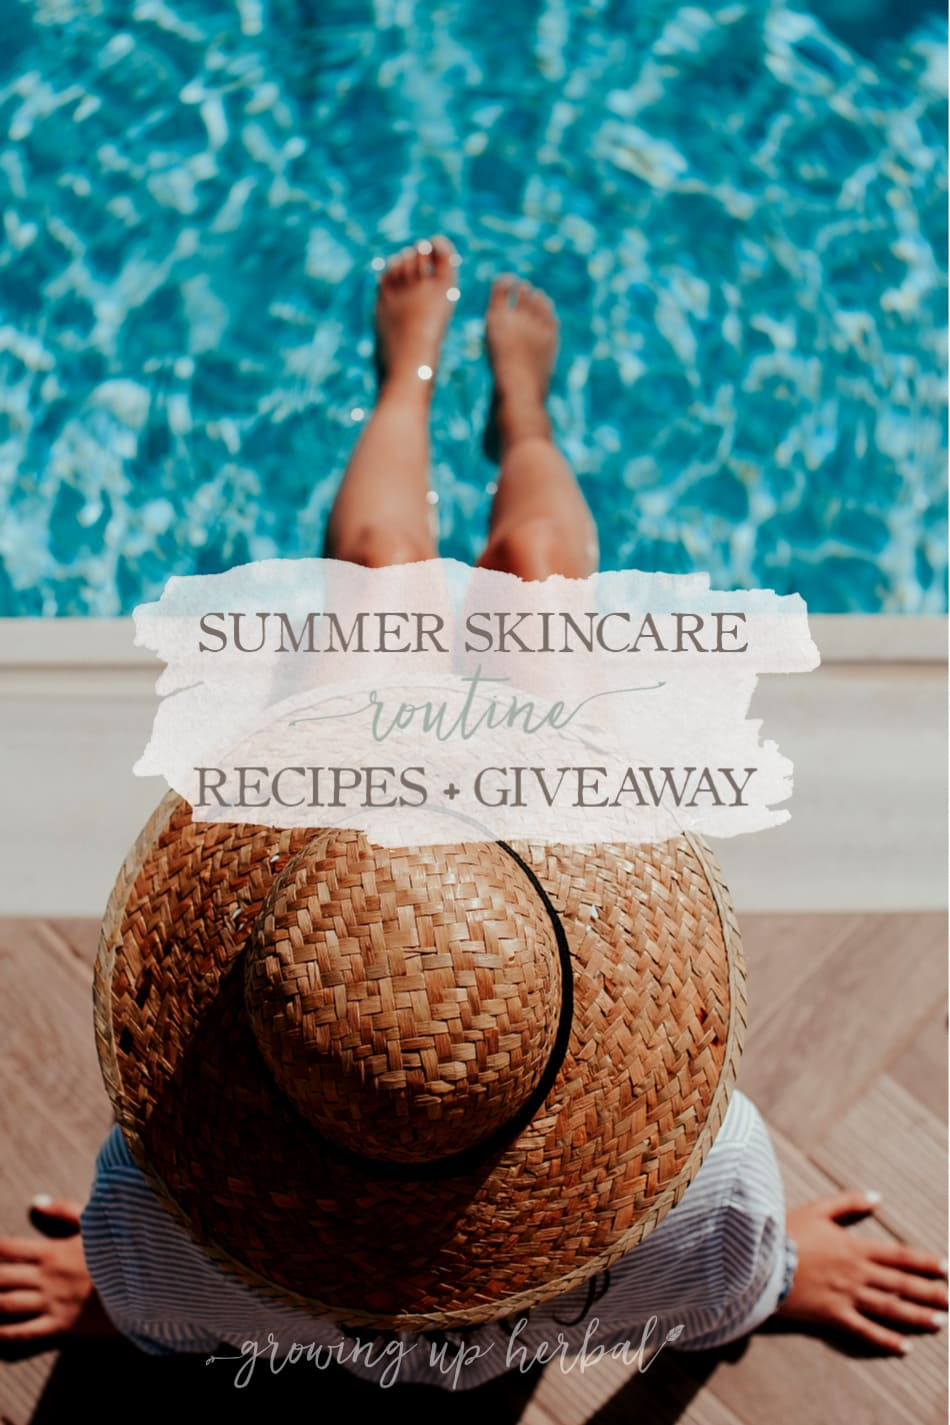 My Healthy Summer Skincare Routine & DIY Recipes (And A Giveaway) | Growing Up Herbal | Check out my new summer skincare routine along with some great DIY skin care recipes and a natural skin care package giveaway too!